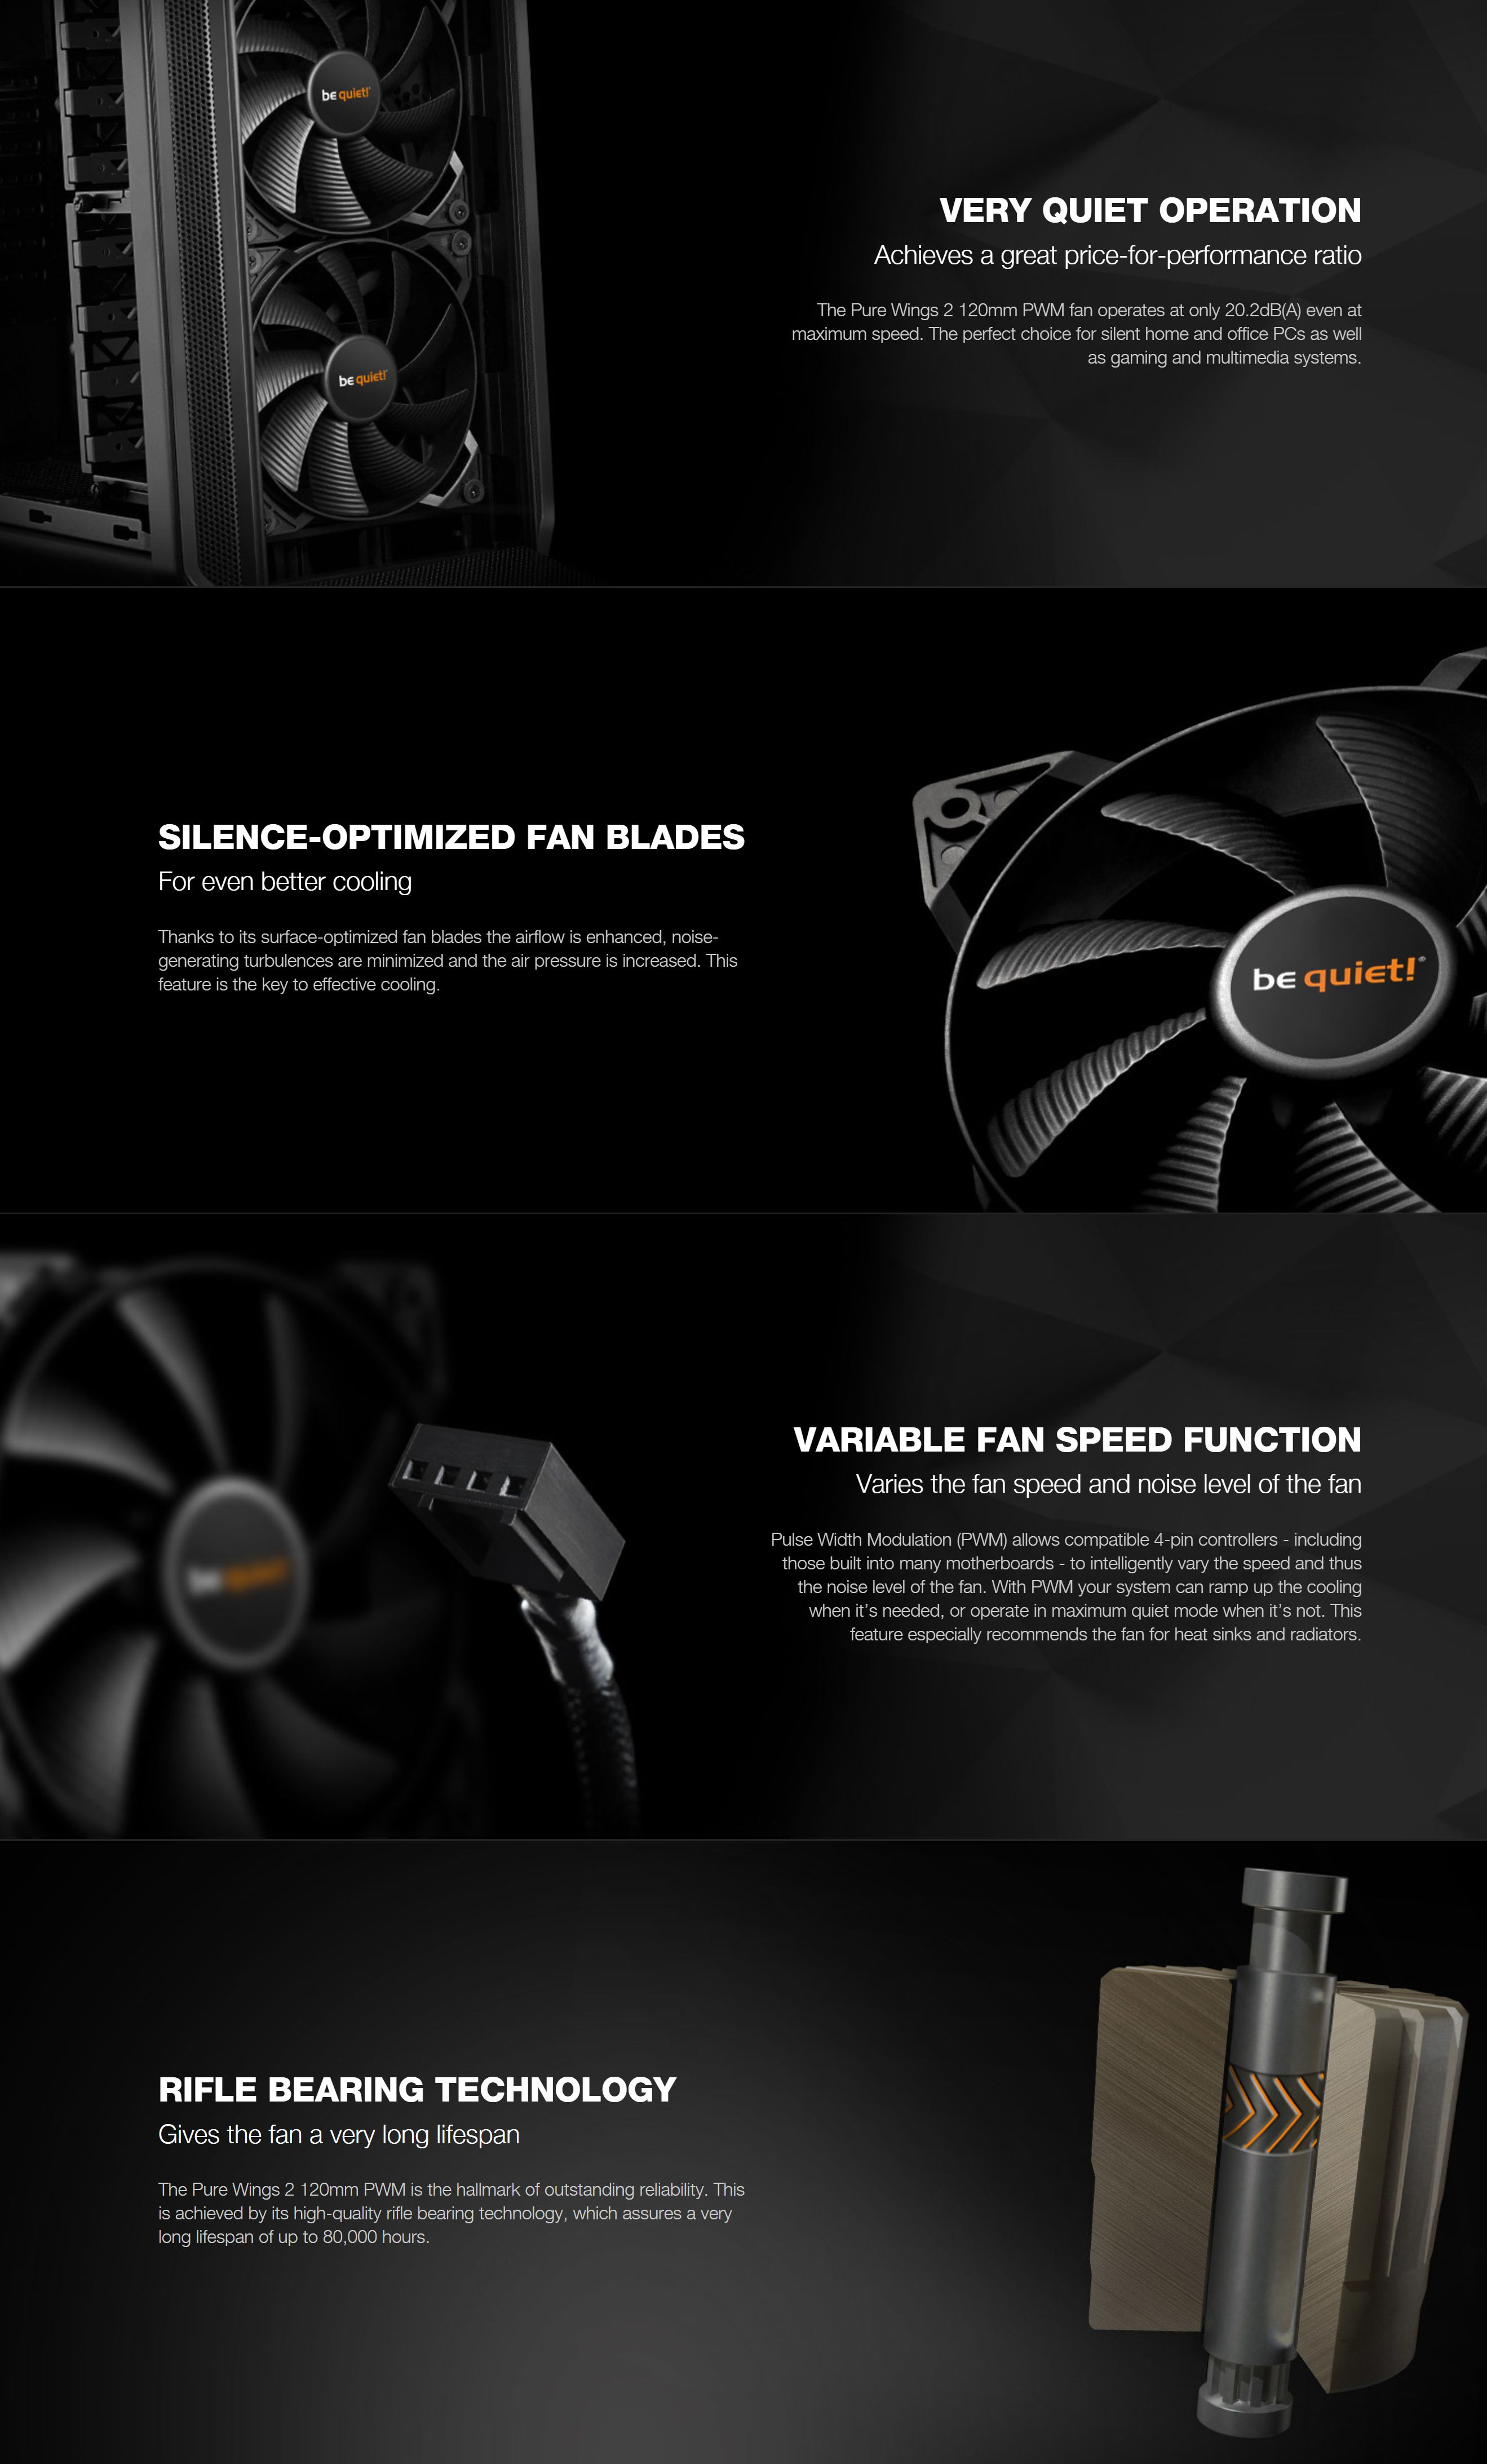 #1692 - 'Pure Wings 2 I 120 mm PWM silent essential Fans from be quiet!' - www_bequiet_com.jpg